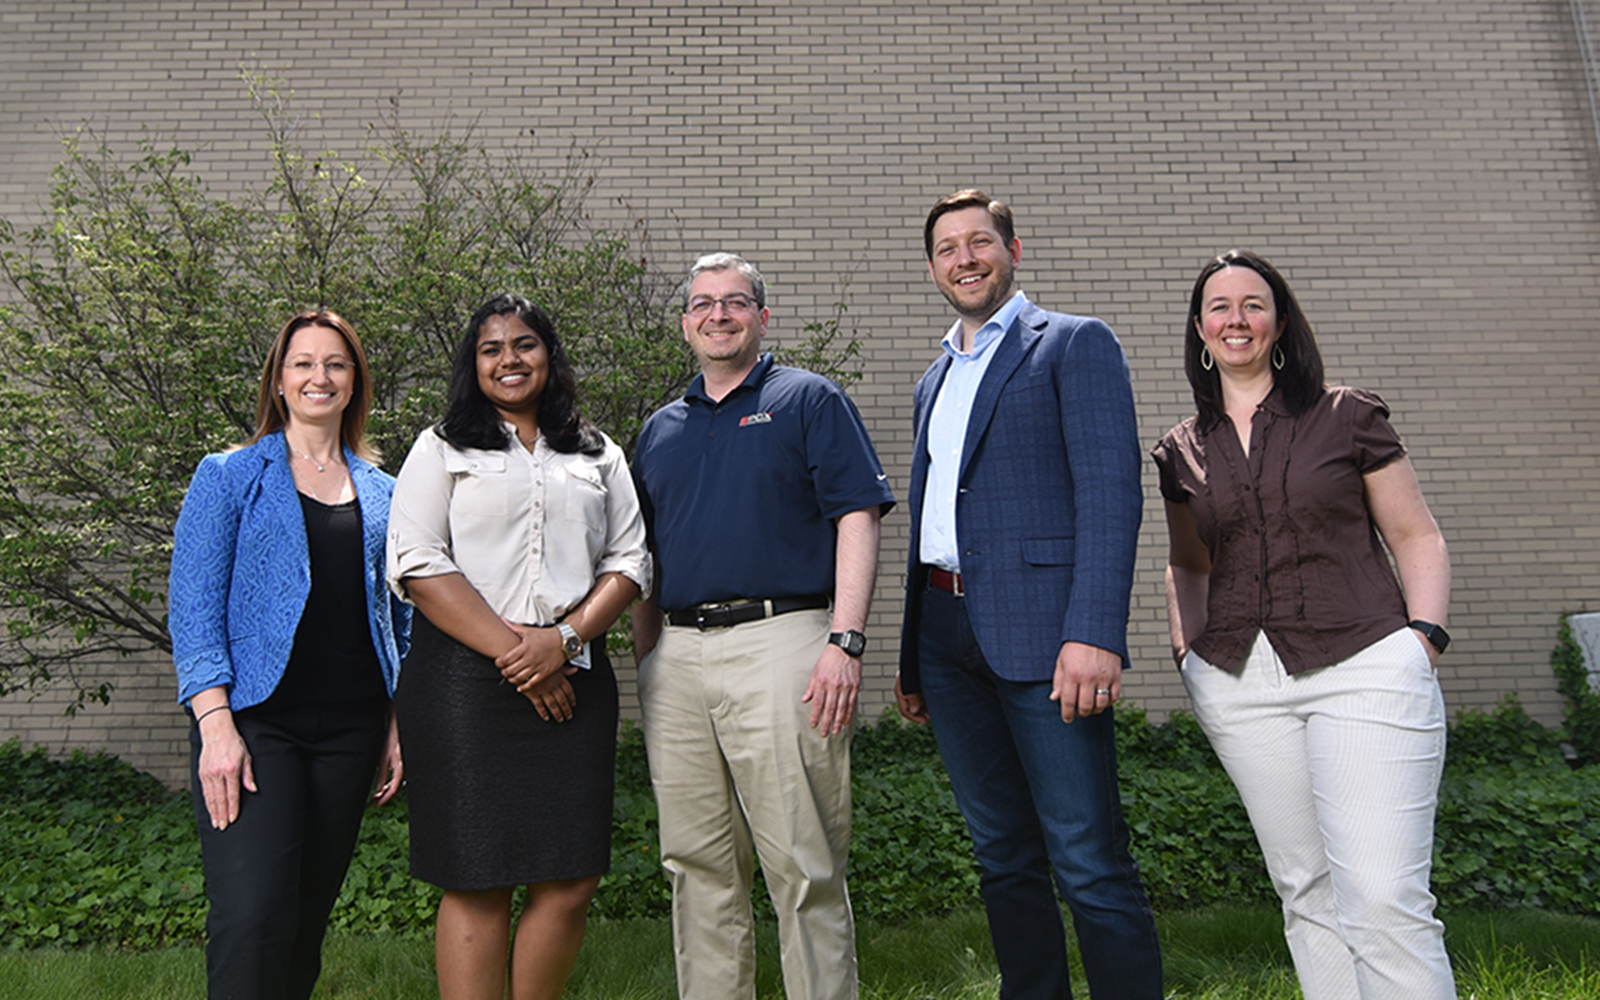 Left to right, professor Anna Radziwillowicz, MSBAPM student Chitra Reddy, PCX general manager and COO Aris Fotos, MBA Student Don Pendagast, and professor Jennifer Eigos. (Nathan Oldham / UConn School of Business)